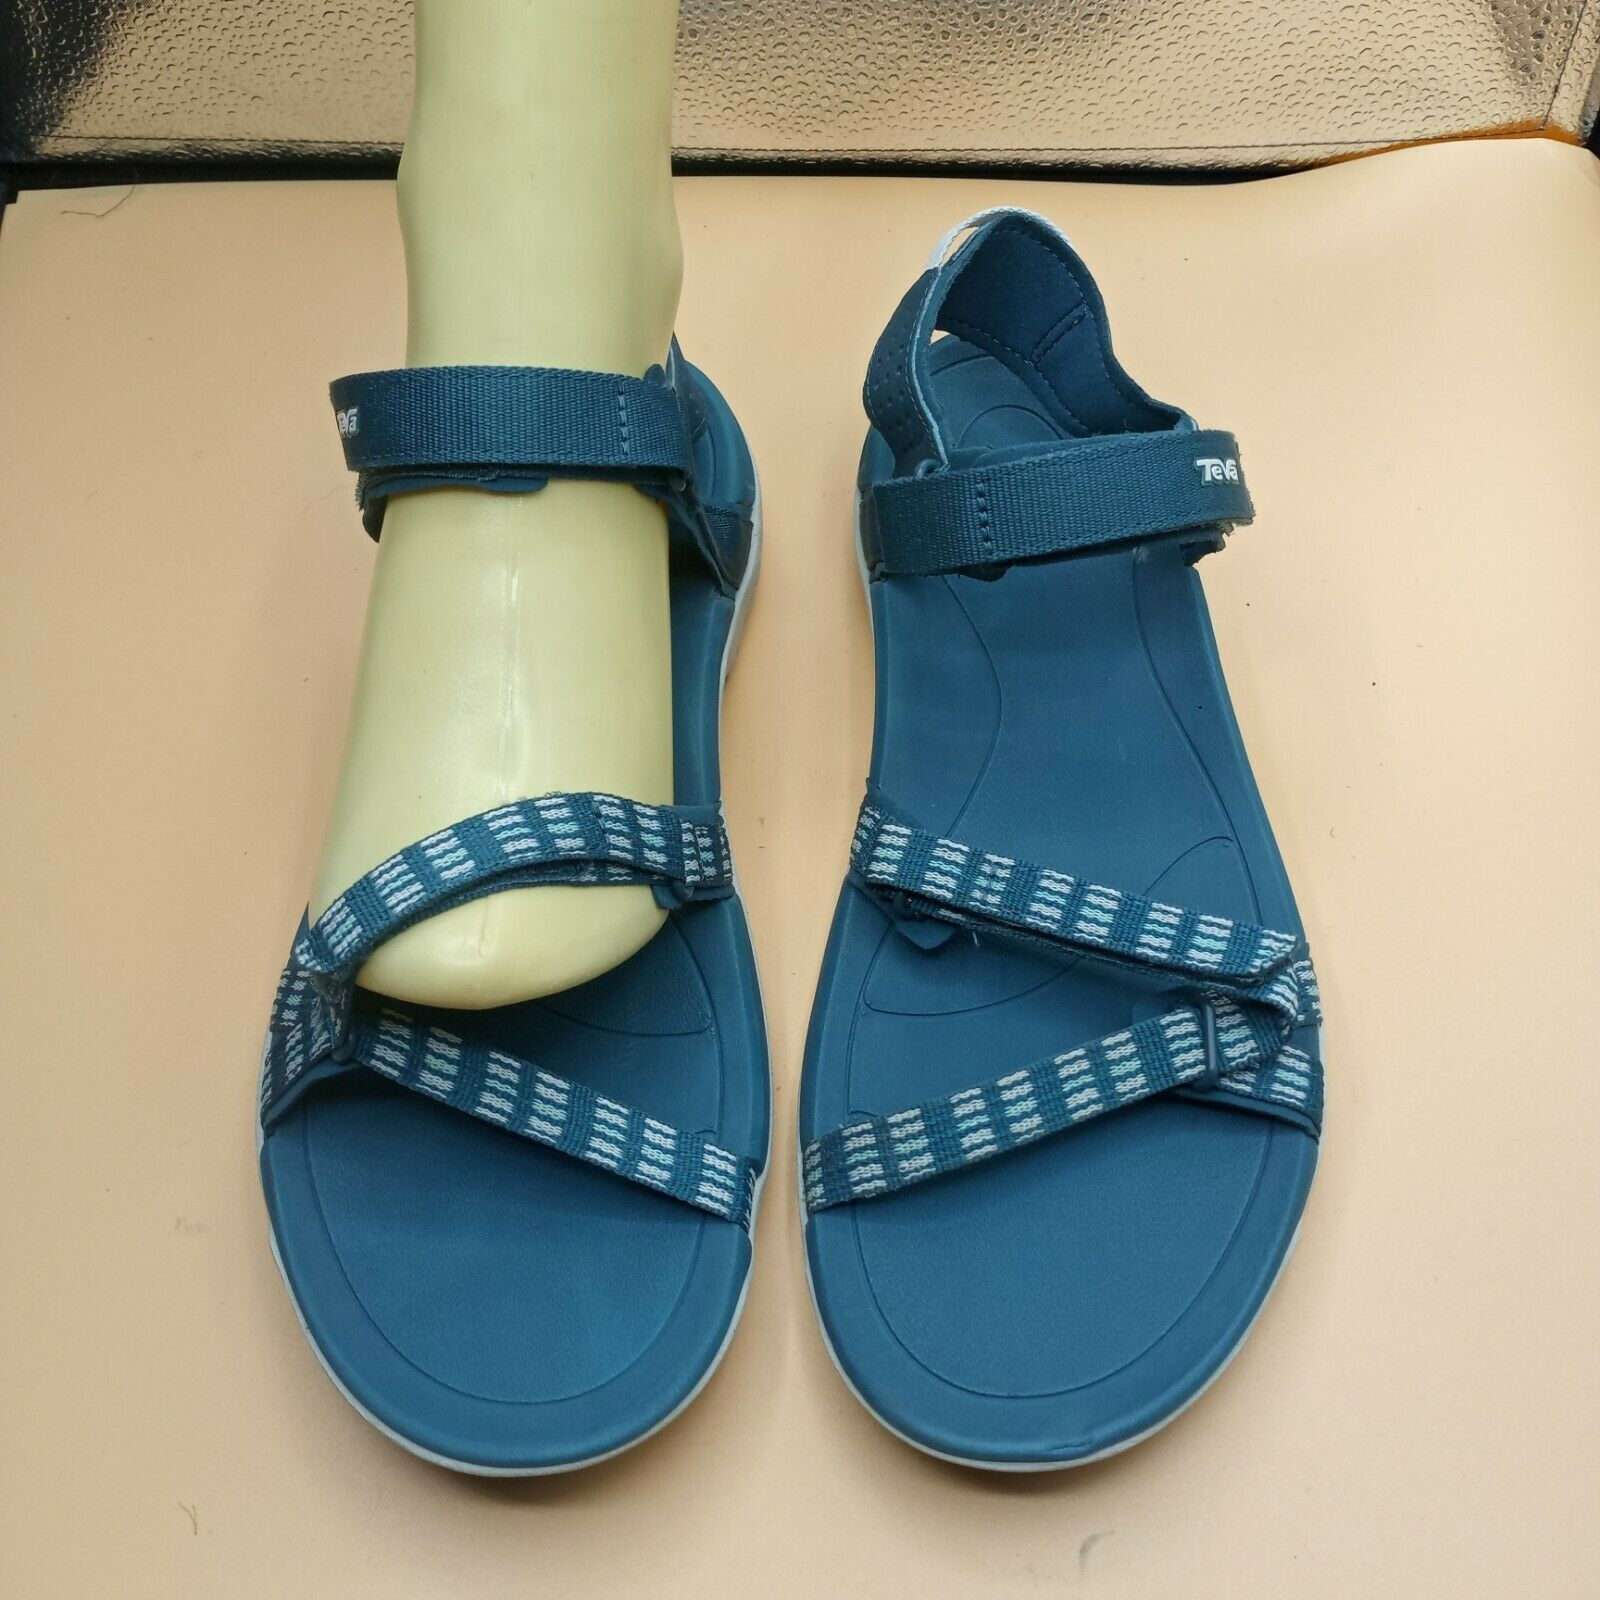 Teva Women Sandals 11 - image 5